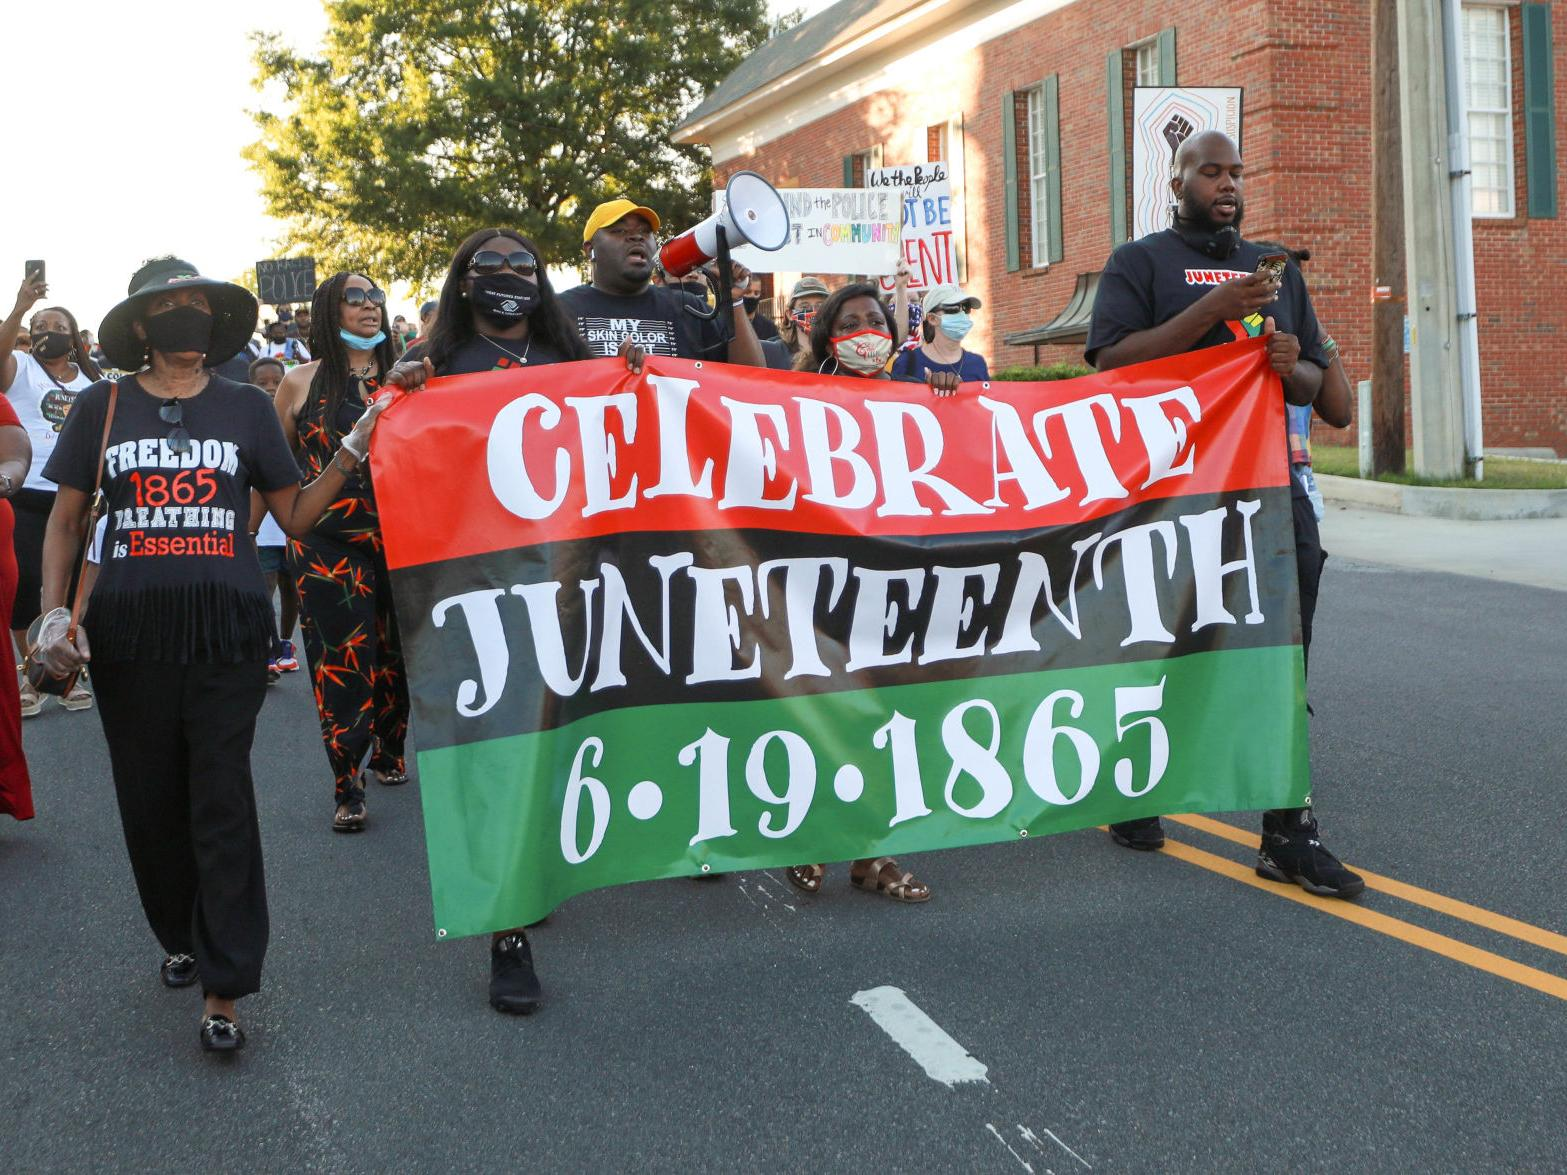 People marching while holding a Juneteenth banner